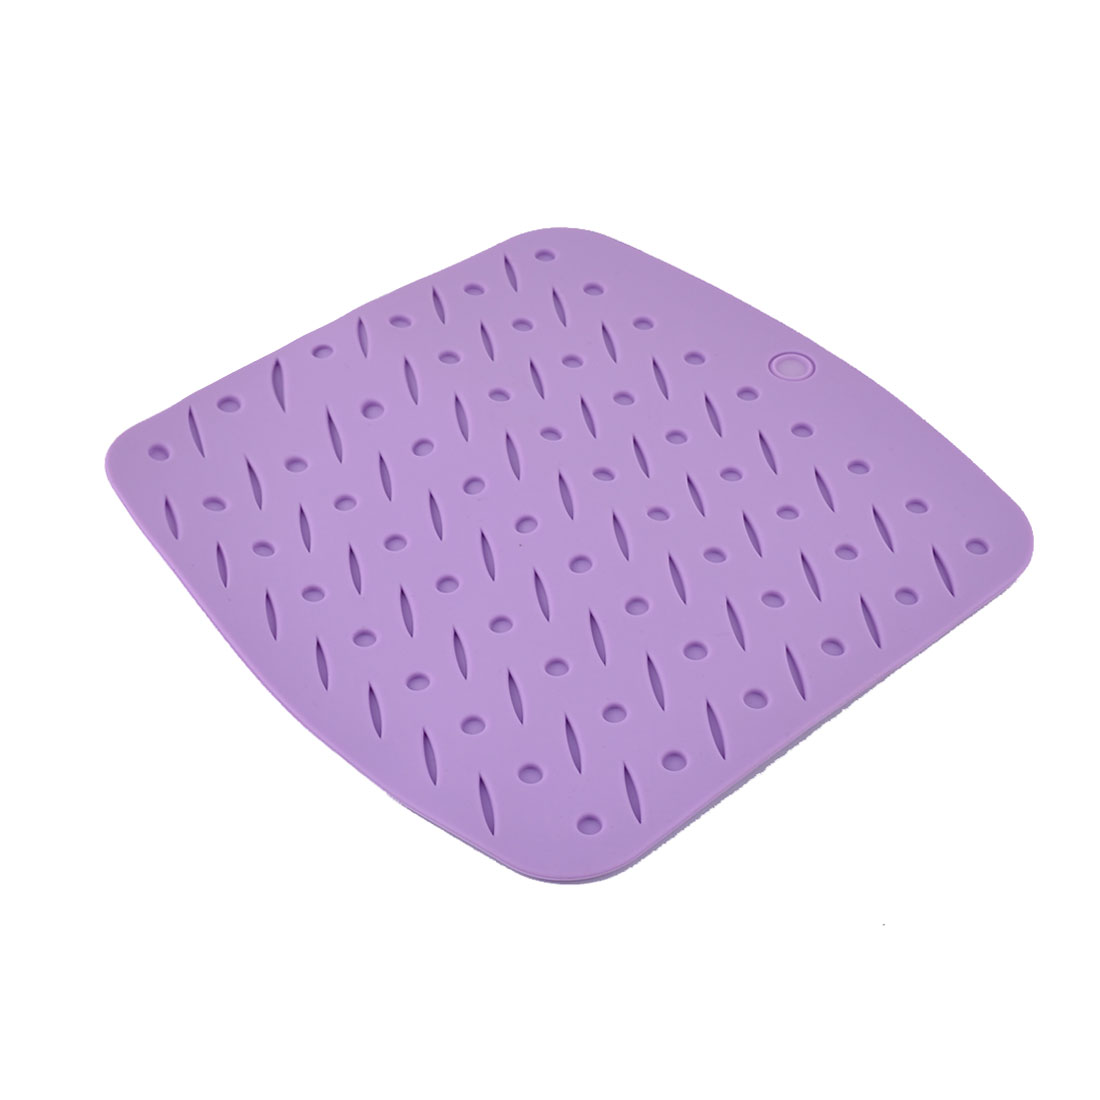 Silicone Square Shaped Heat Resistant Dining Table Mat Placemat Coasters Purple